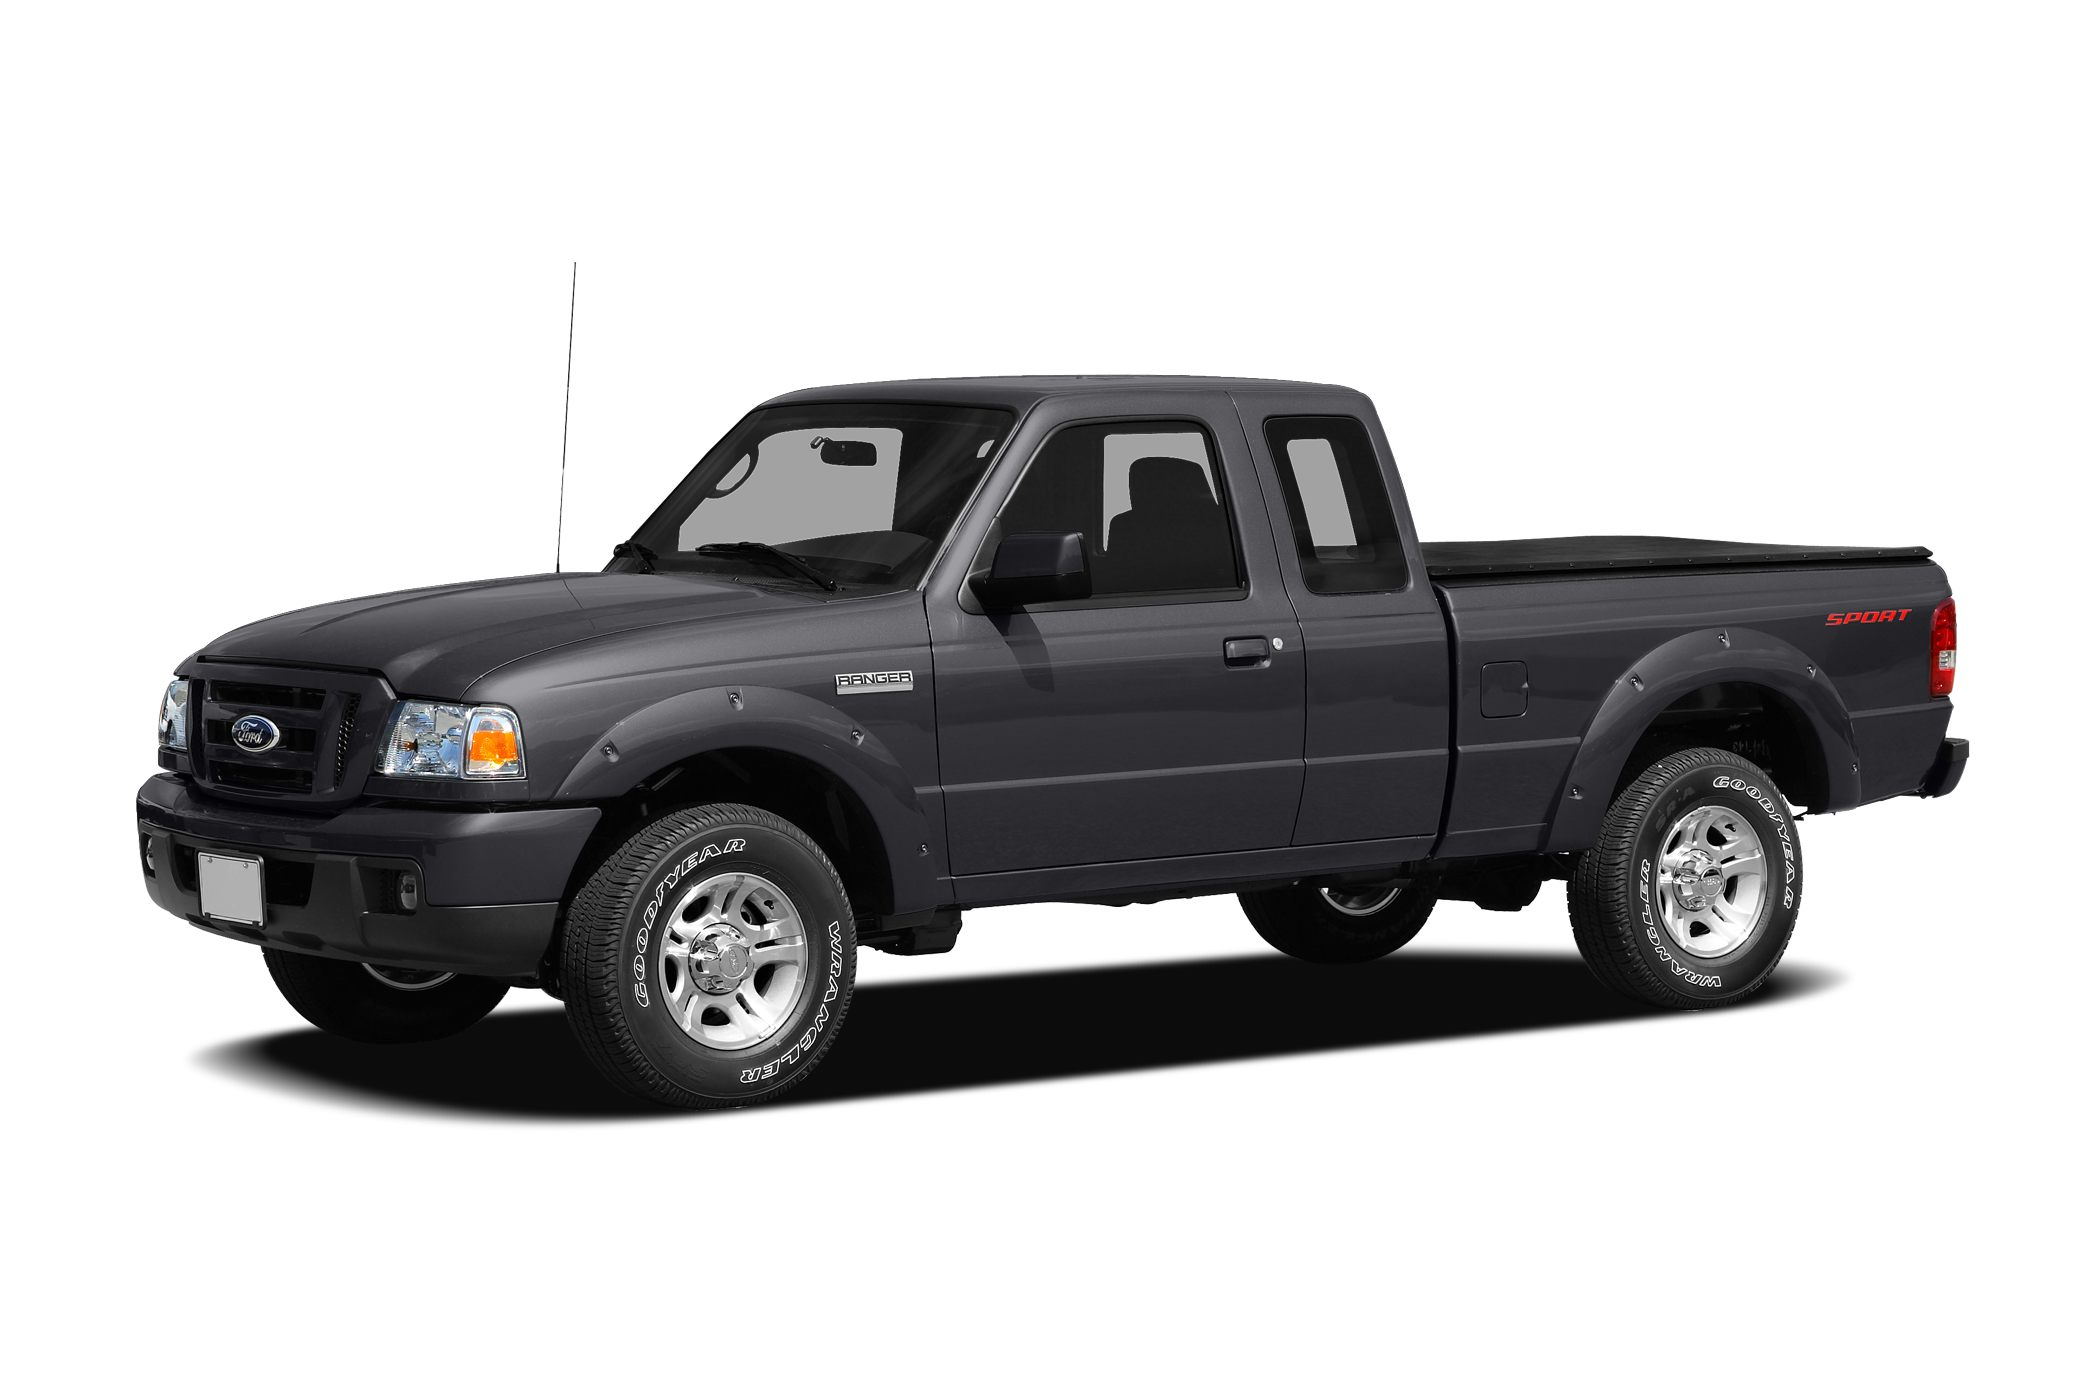 2008 Ford Ranger Sport See what we have to offer Hear about the Motors NW difference Feel comple